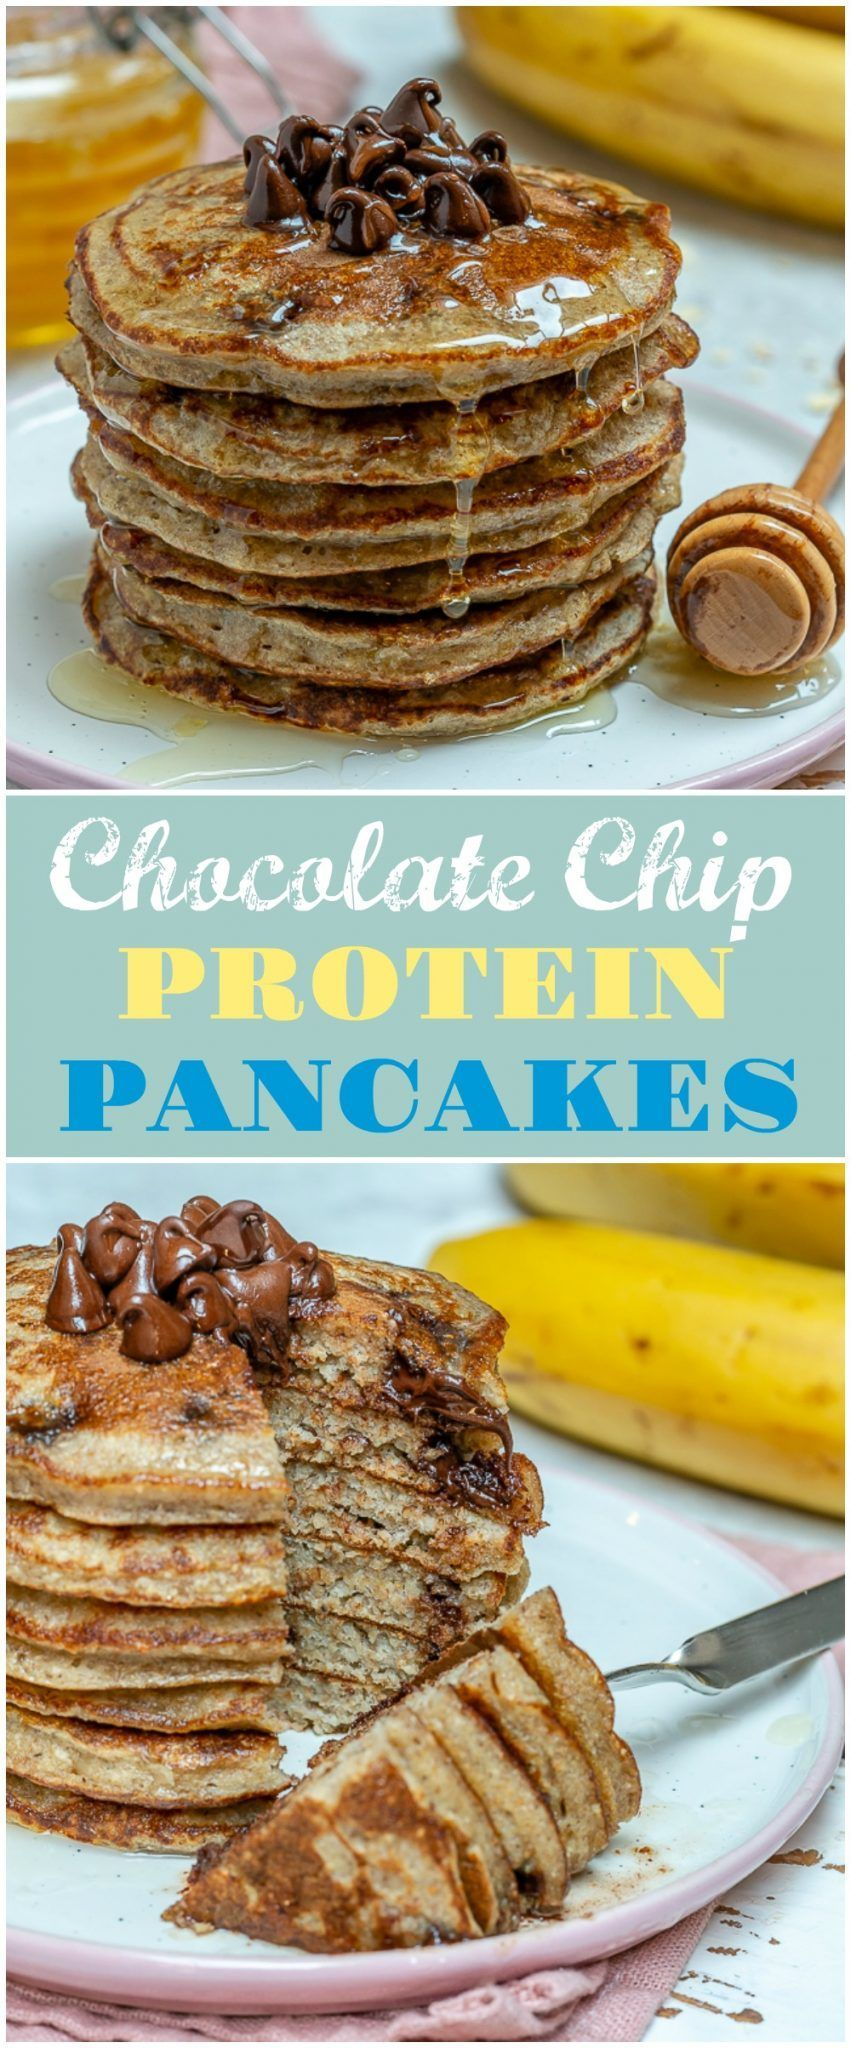 Chip Protein Pancakes These Simple & Clean Chocolate Chip Protein Pancakes are Weekend Winners! | Clean Food CrushThese Simple & Clean Chocolate Chip Protein Pancakes are Weekend Winners! | Clean Food Crush